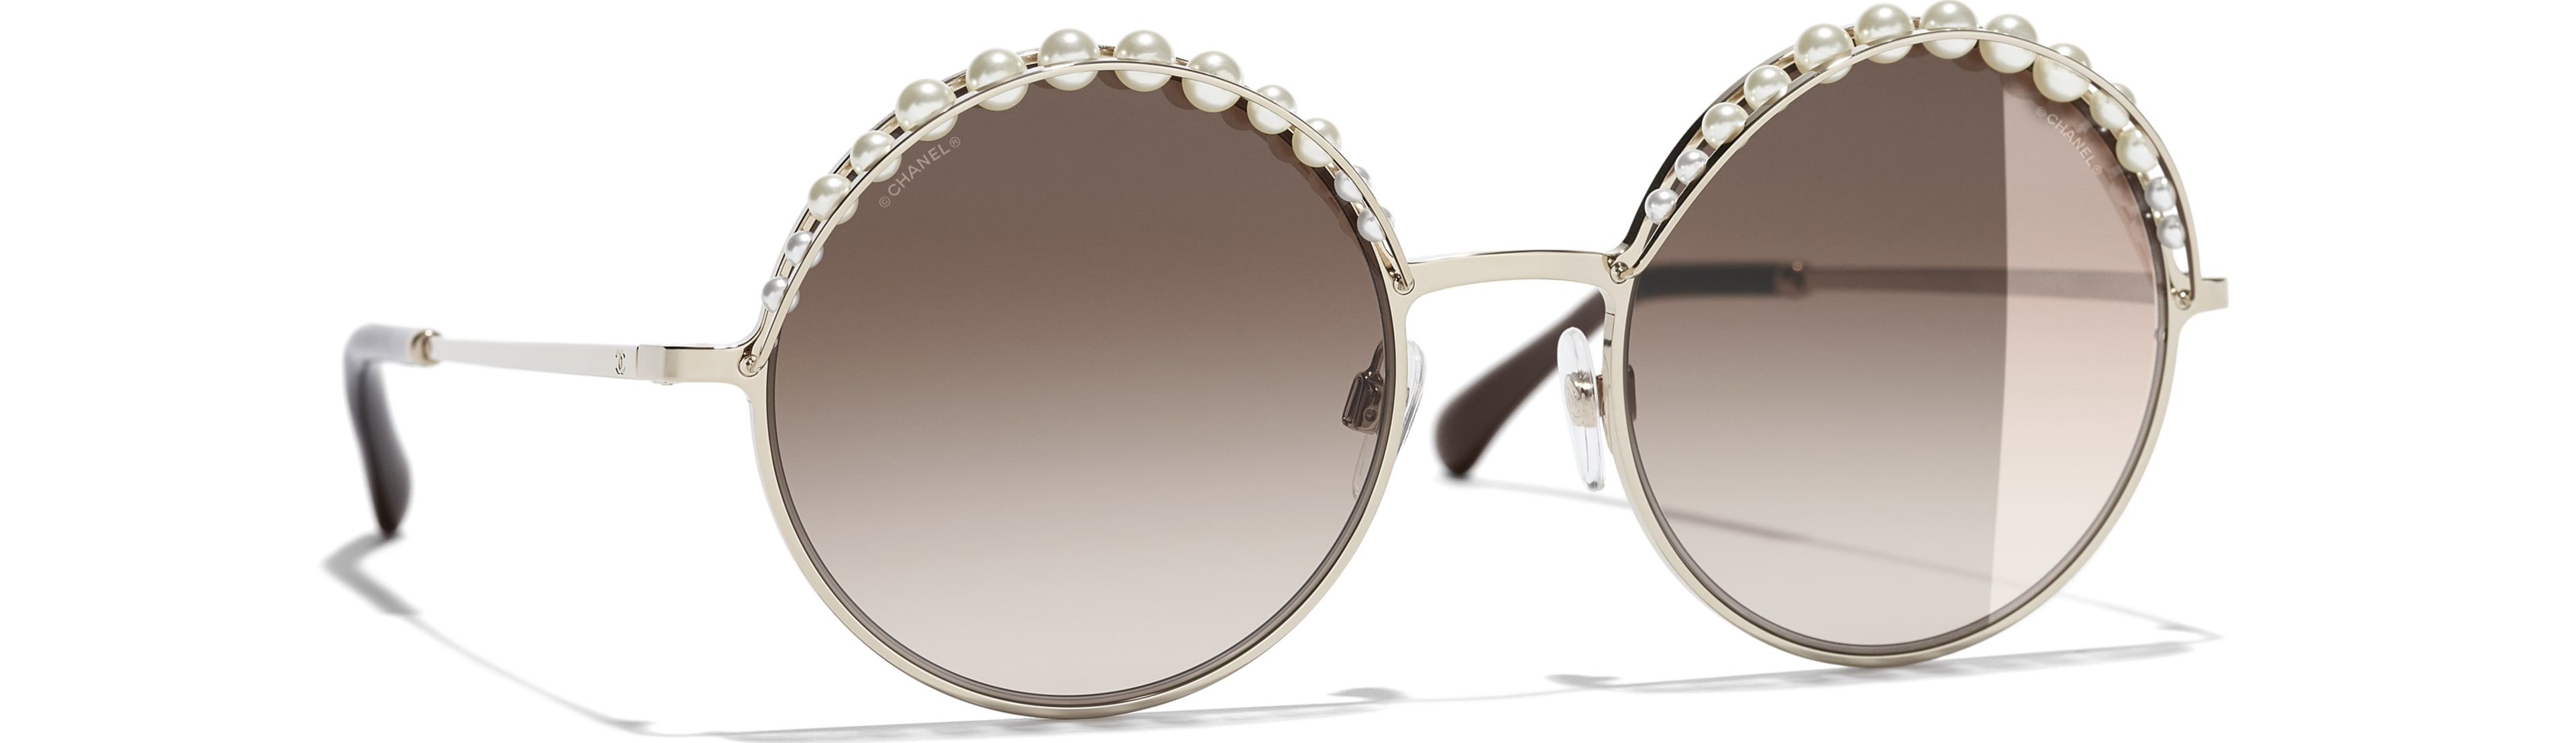 Metal & Imitation Pearls gold frame. Light Brown gradient lenses